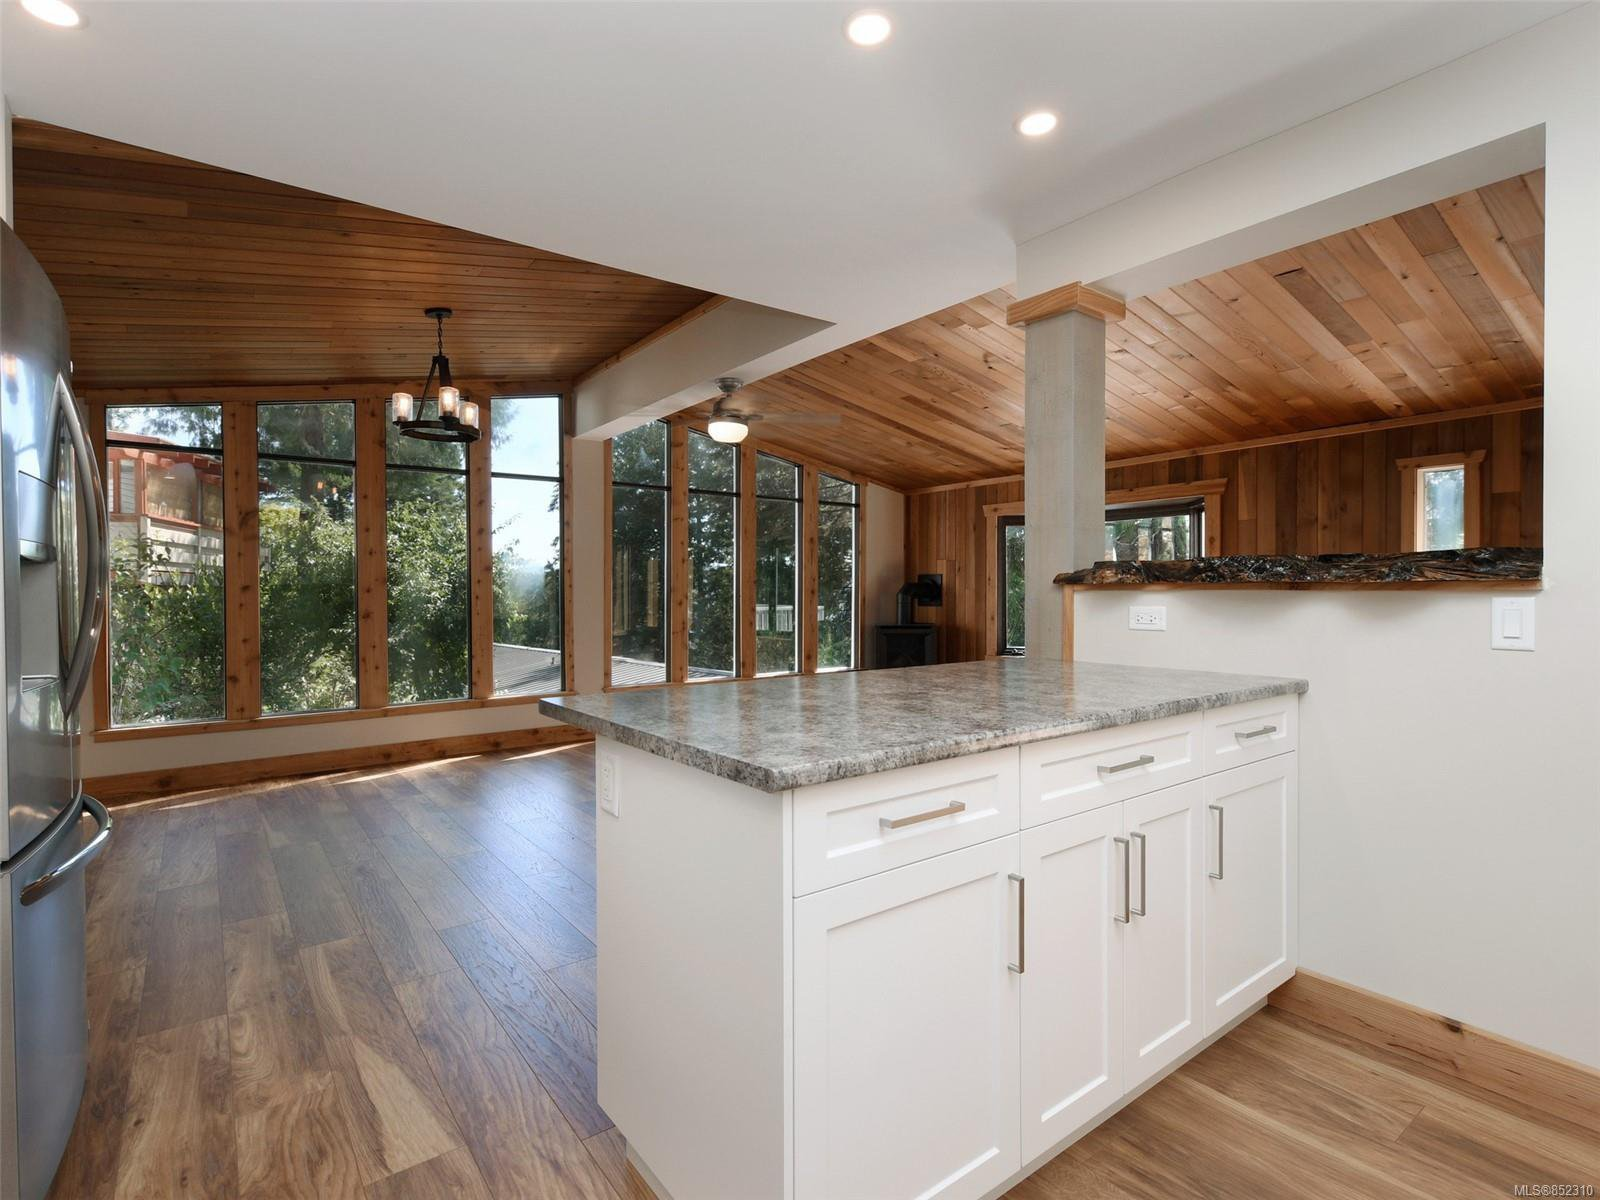 Photo 8: Photos: 94 5838 Blythwood Rd in : Sk Saseenos Manufactured Home for sale (Sooke)  : MLS®# 852310